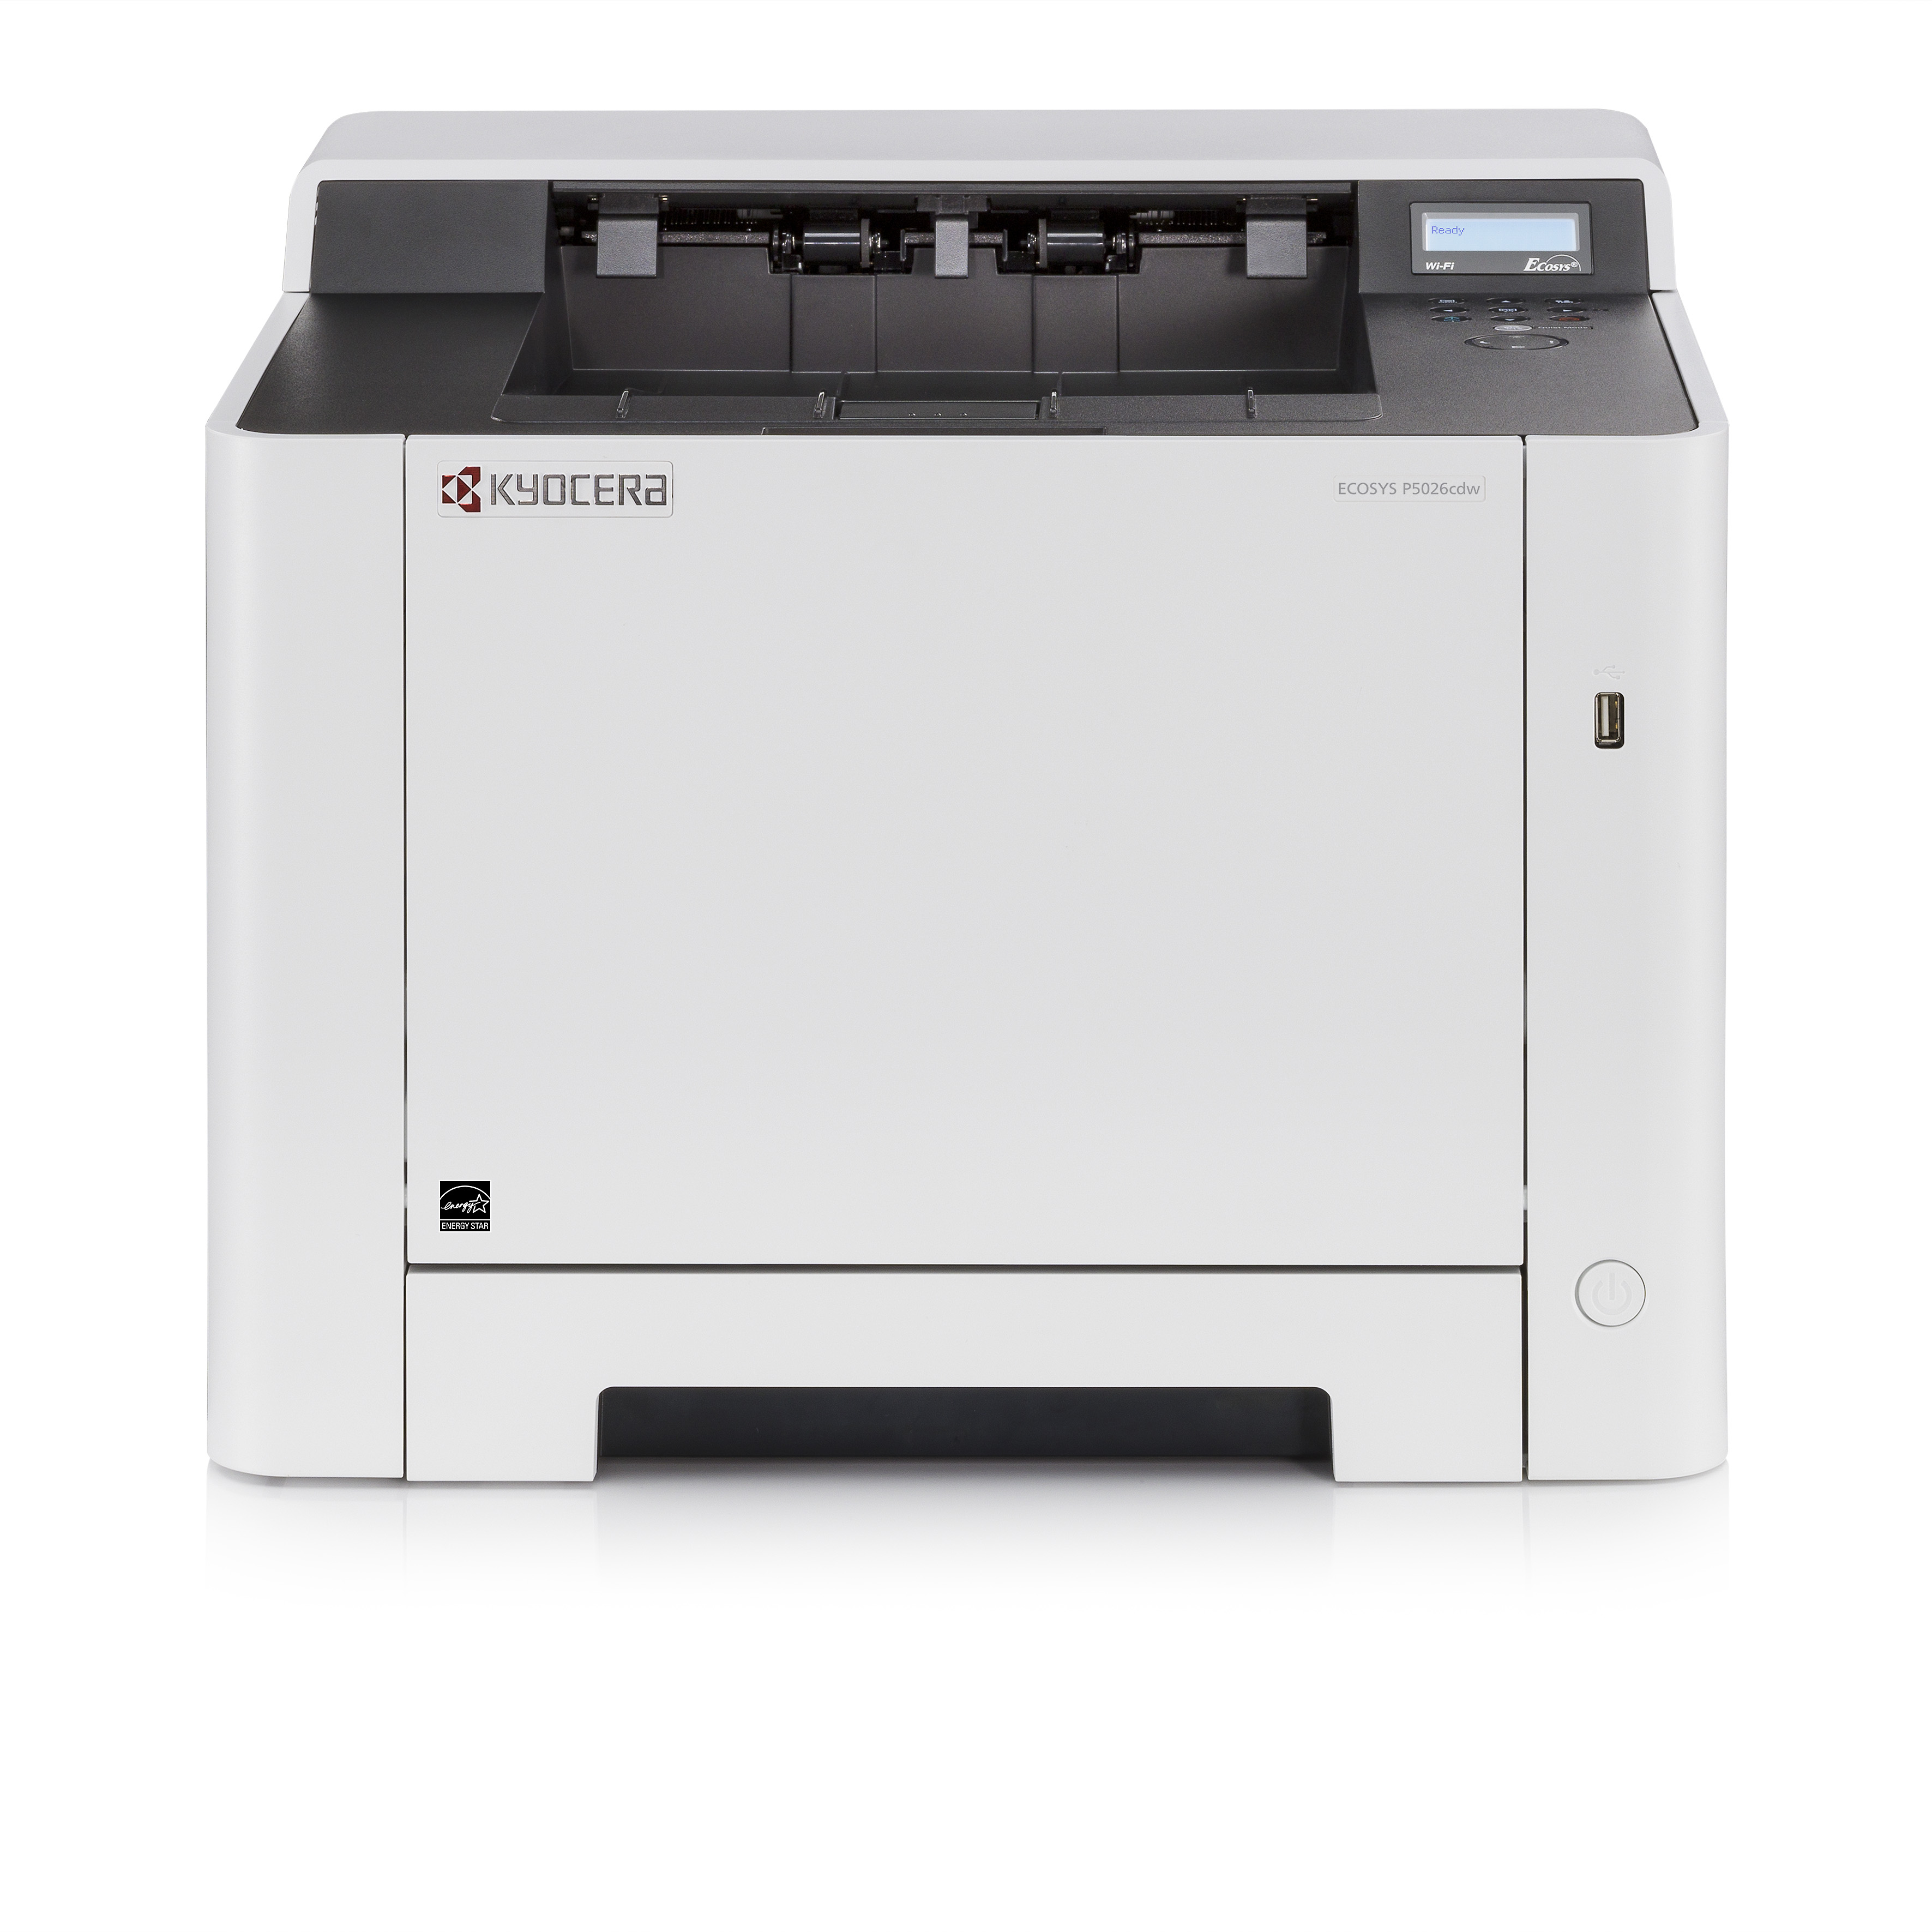 Kyocera Ecosys P5026CDW 26ppm Duplex Wireless Colour Laser Printer